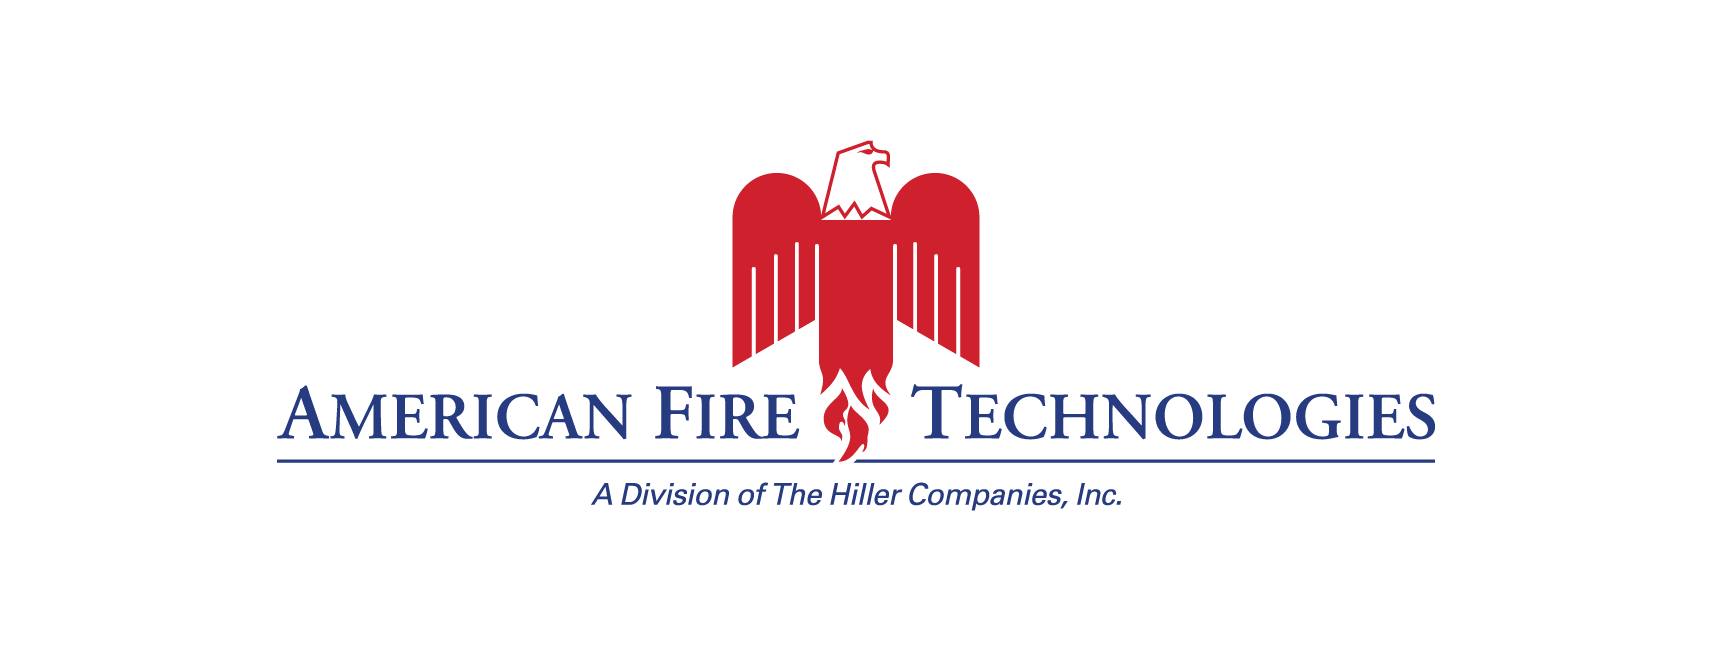 The Hiller Companies purchases AFT based in Wilmington, North Carolina.